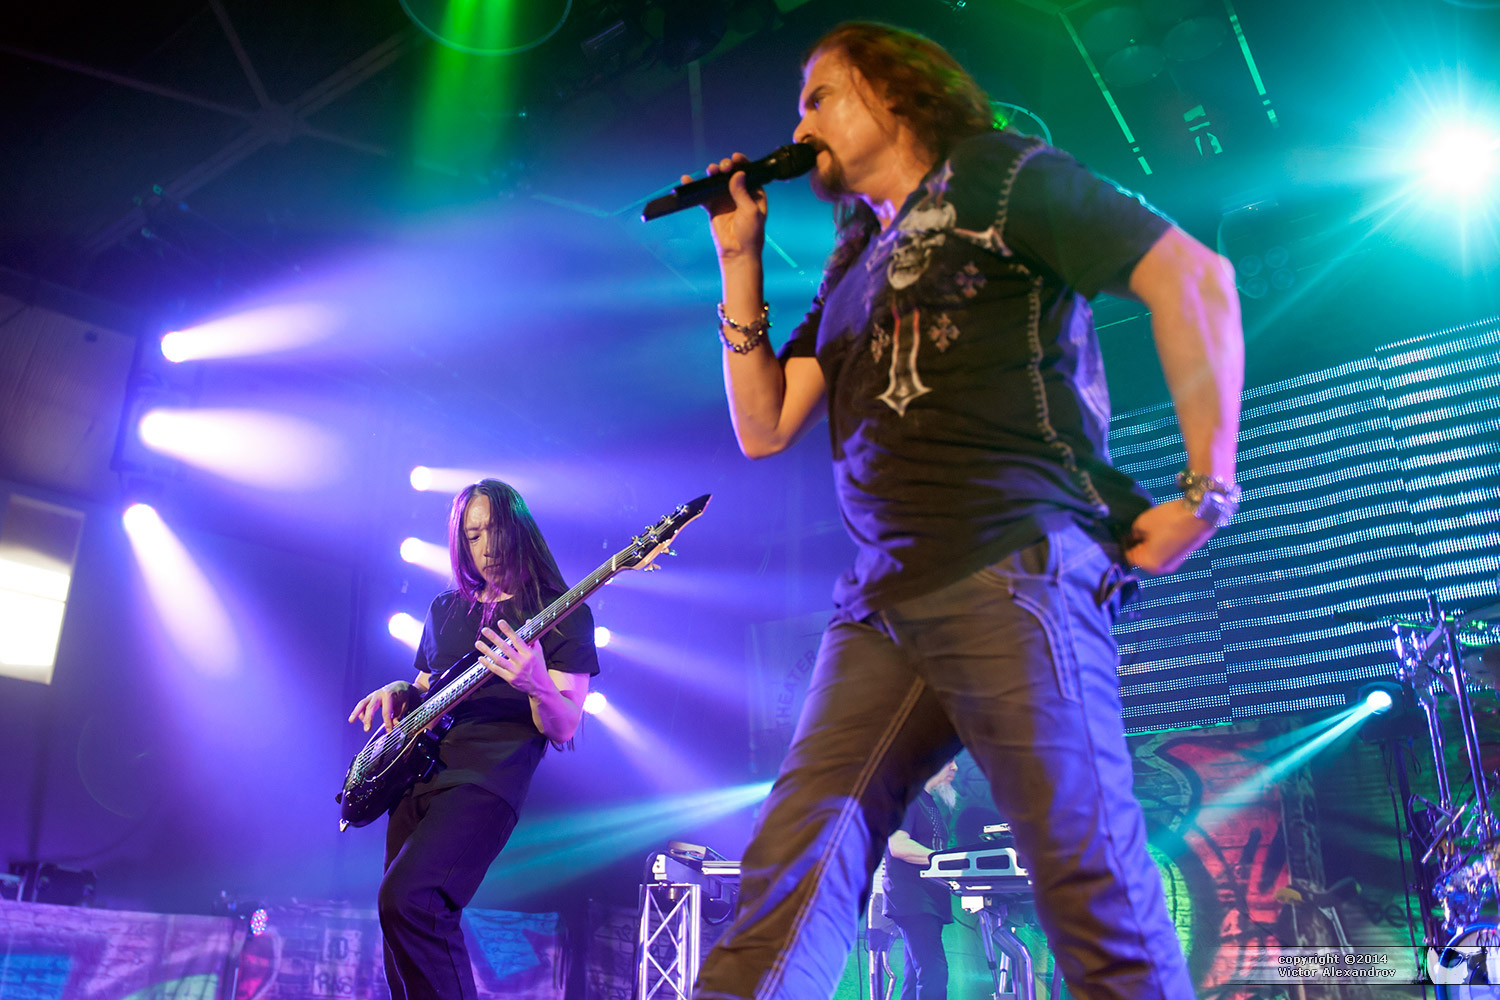 John Myung & James LaBrie